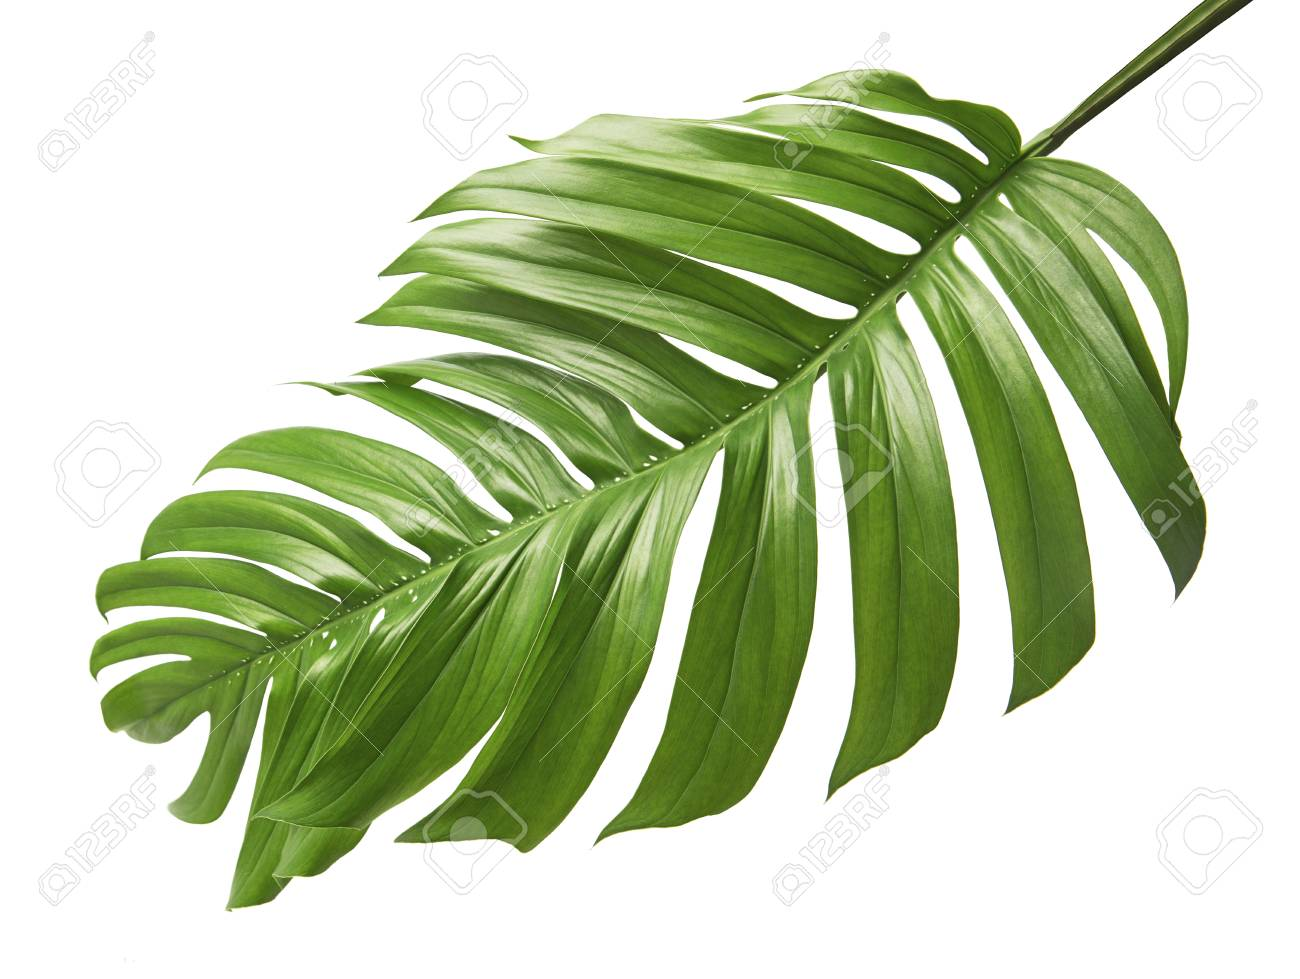 Monstera deliciosa leaf or Swiss cheese plant, Tropical foliage isolated on white background, with clipping path - 95037955